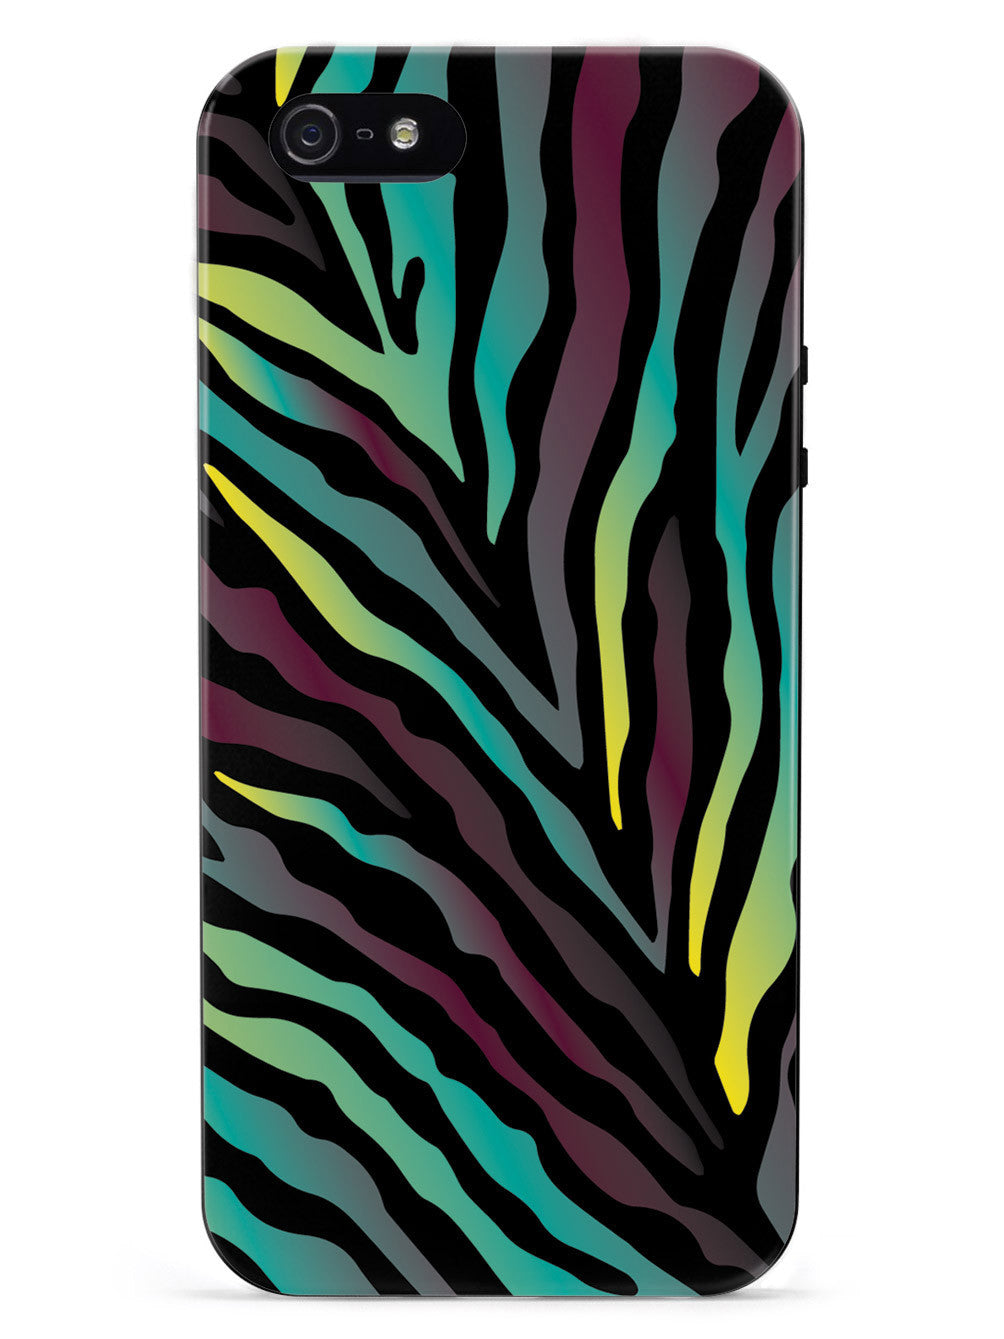 Teal & Purple Zebra Animal Print Pattern Case